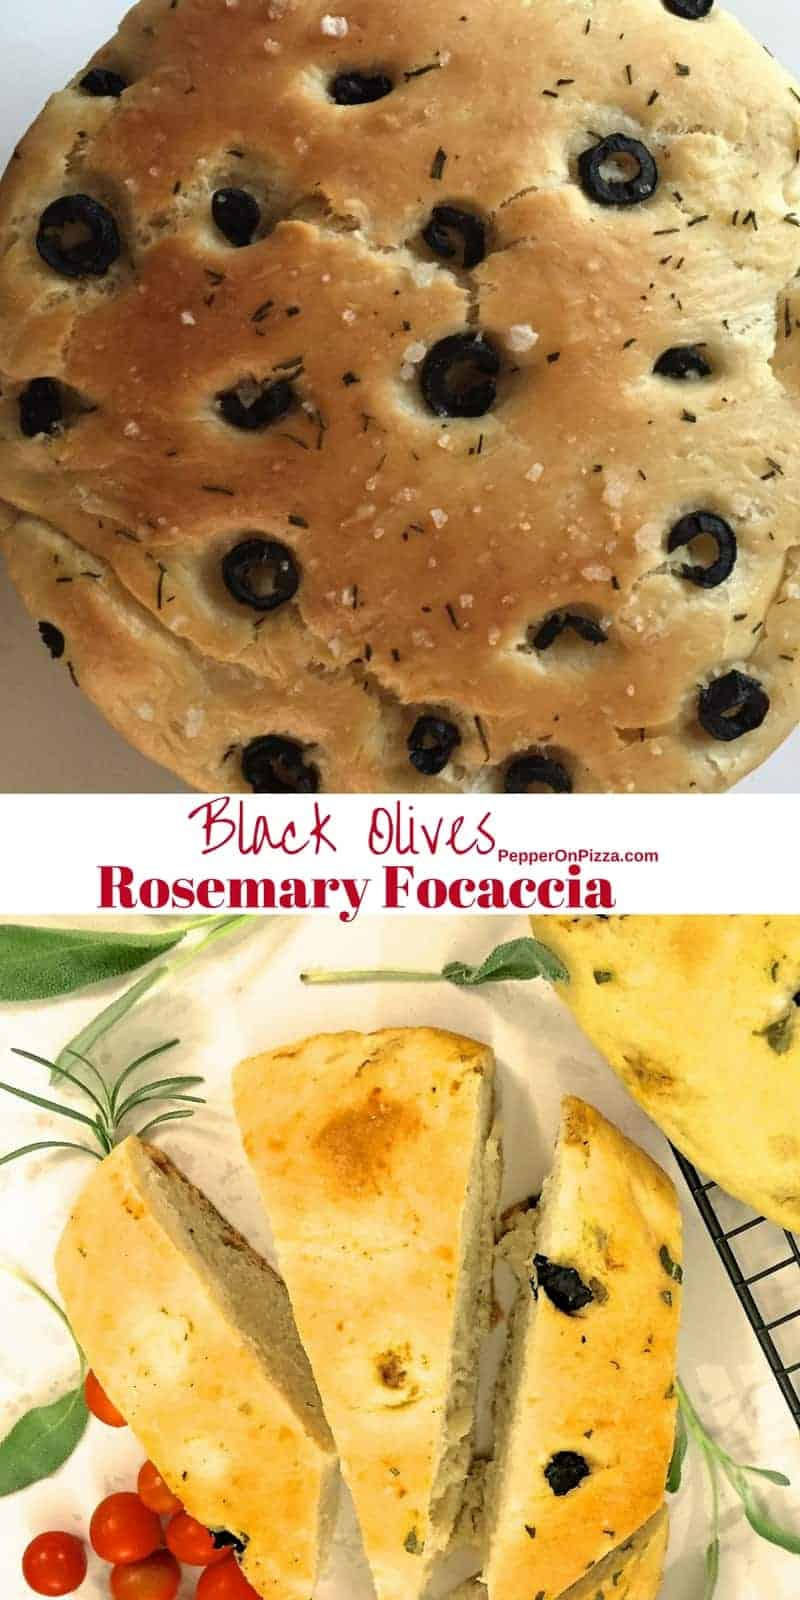 Focaccia with black olives and rosemary_peperonpizza.com